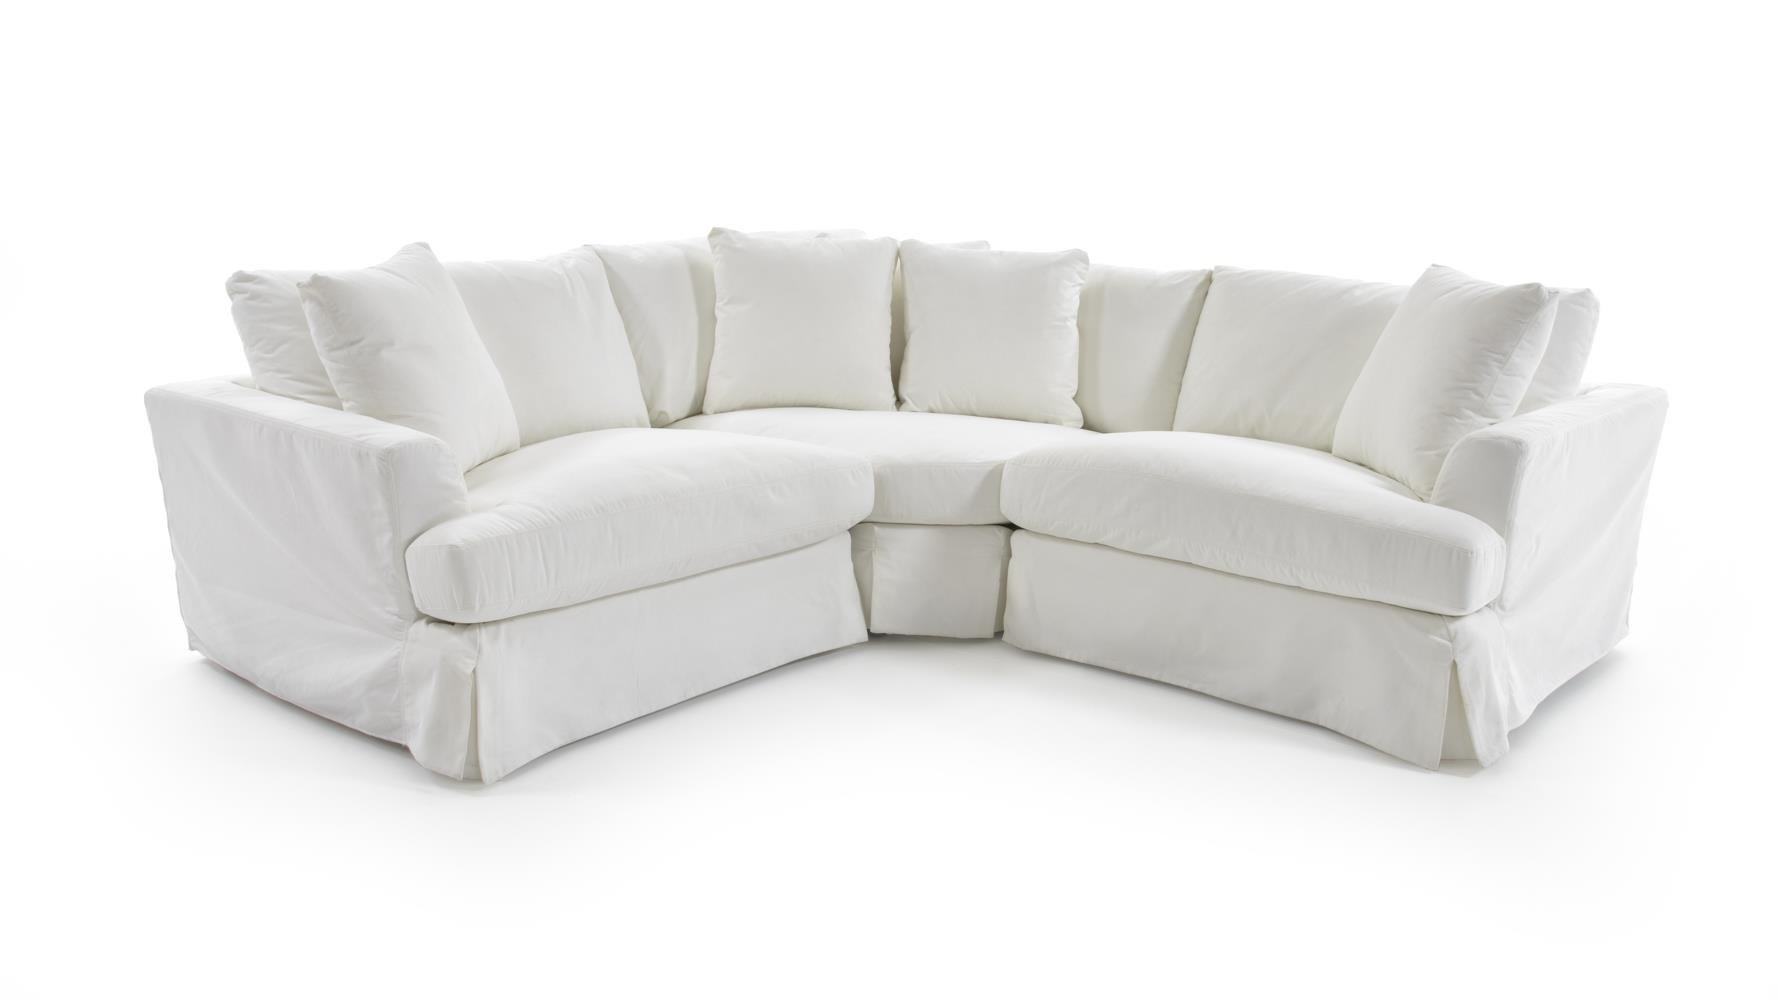 Three Piece Corner Sectional Sofa with Slipcover